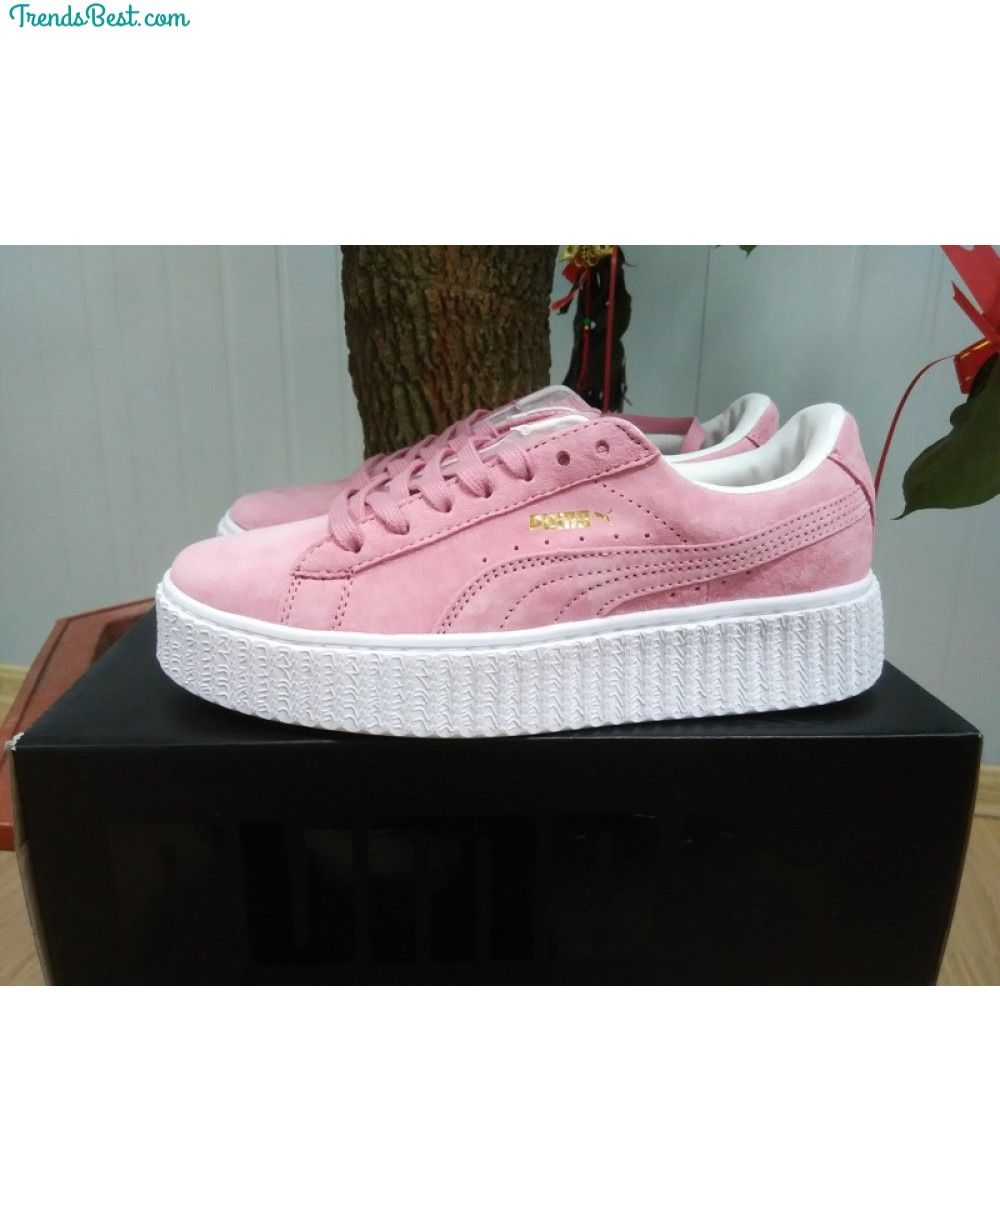 ebc4082f71a Womens Puma Rihanna X Creepers Casual Shoes Suede Pink White - Puma ...